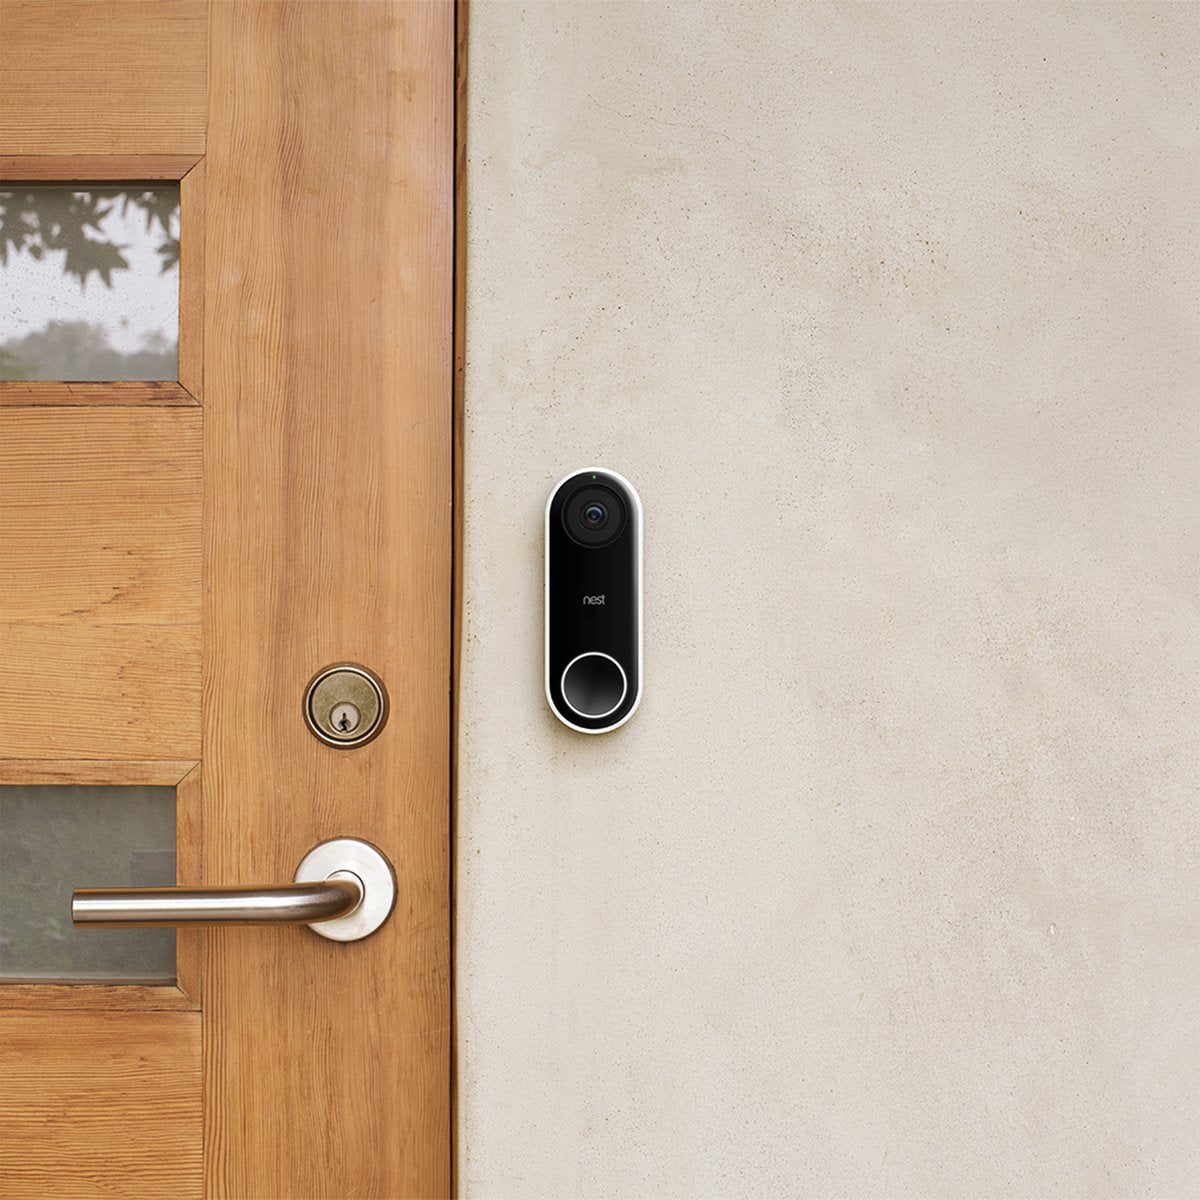 Google Nest Hello Doorbell Power Adapter & Installation